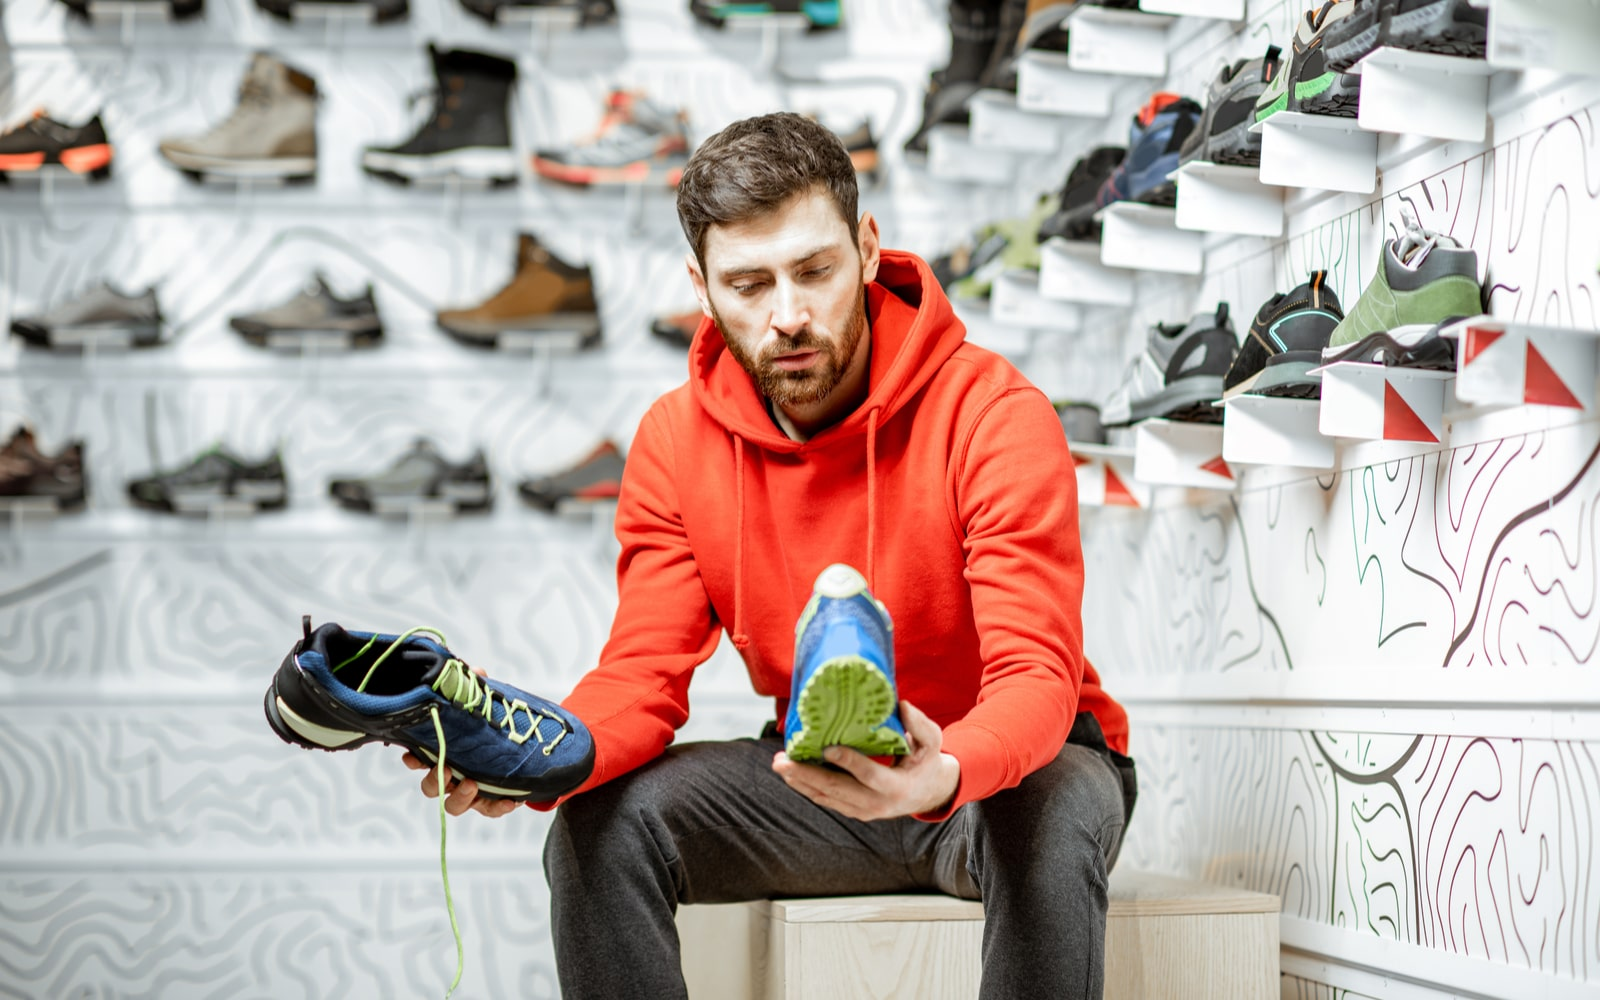 Man trying to select a shoe